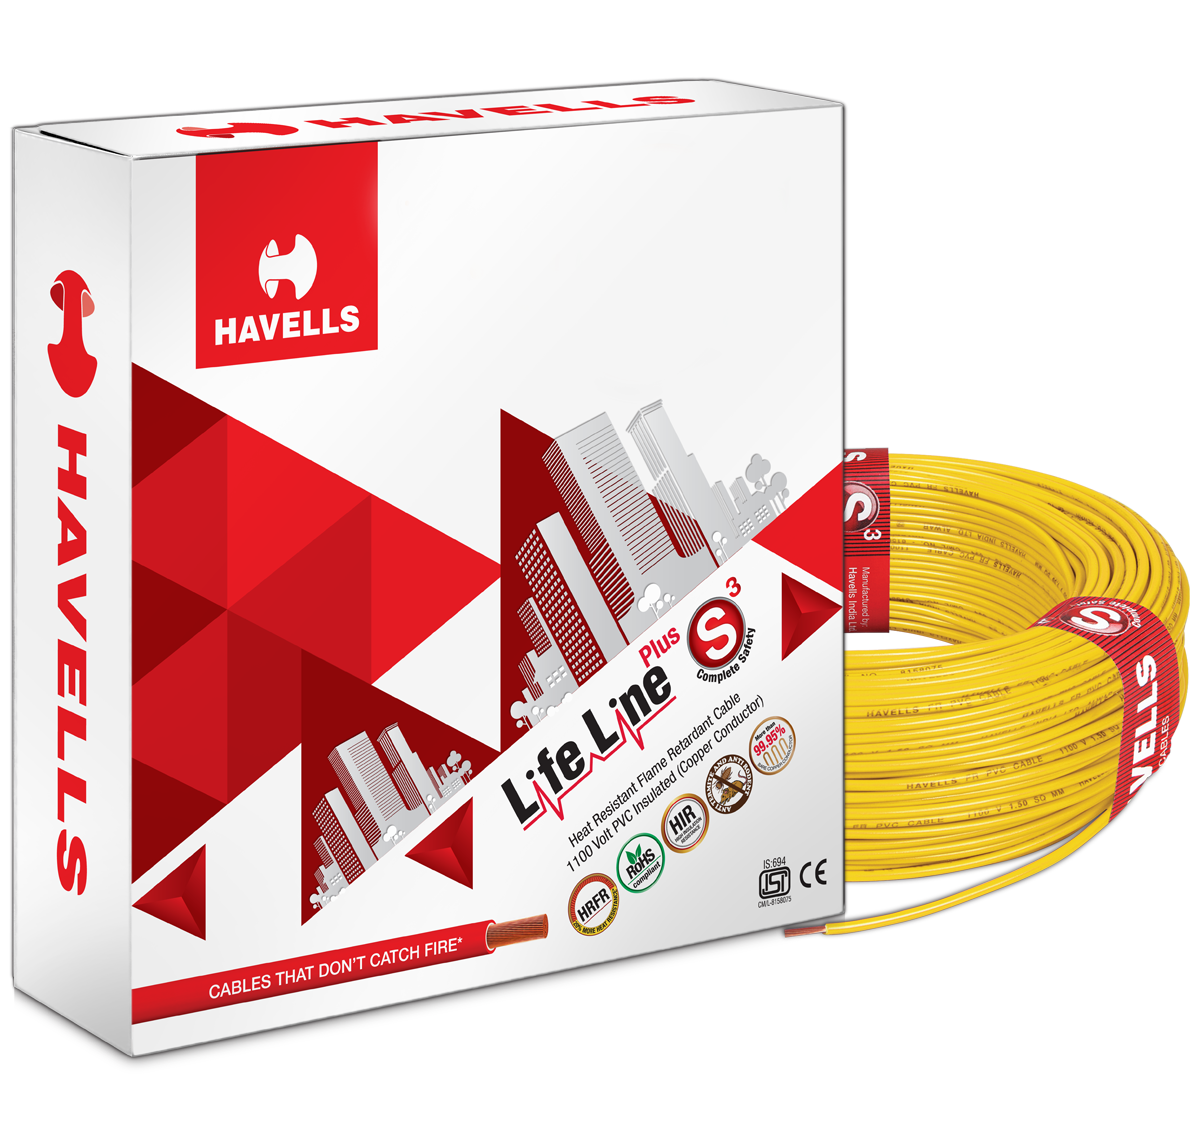 Life Line Plus S3 HRFR Cables (Yellow)